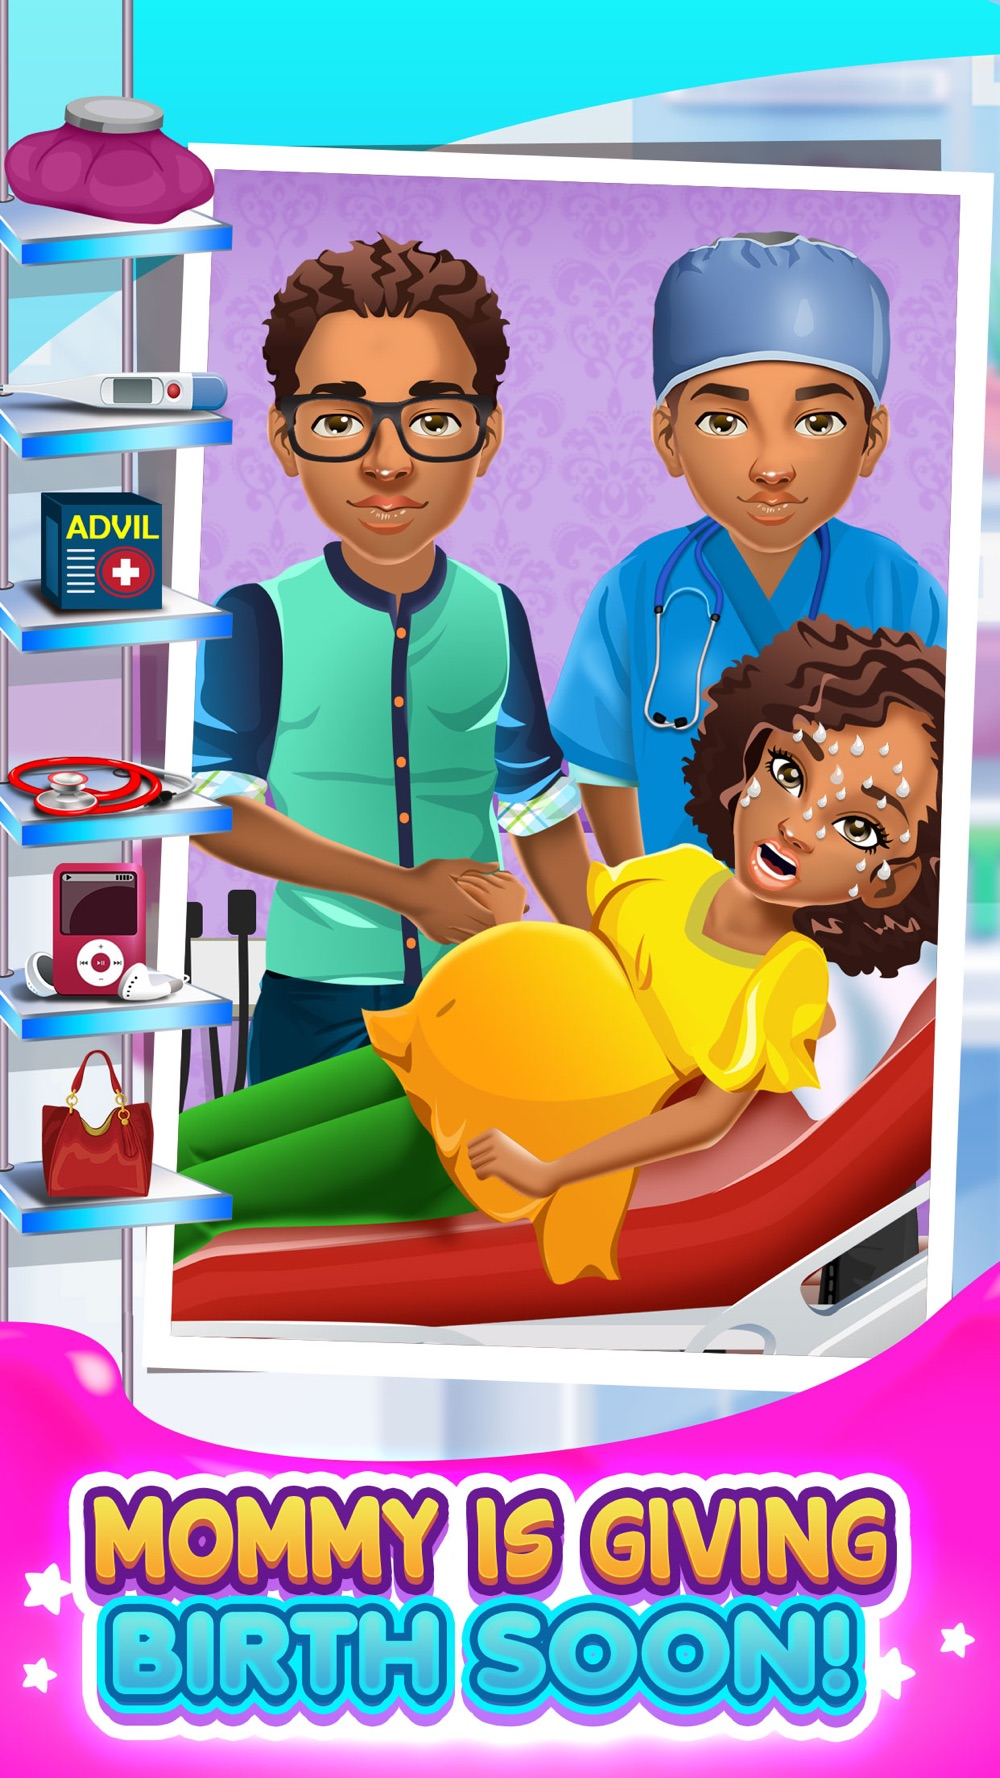 Mommy's New Baby Doctor Salon - Little Hospital Spa & Surgery Simulator Games! hack tool